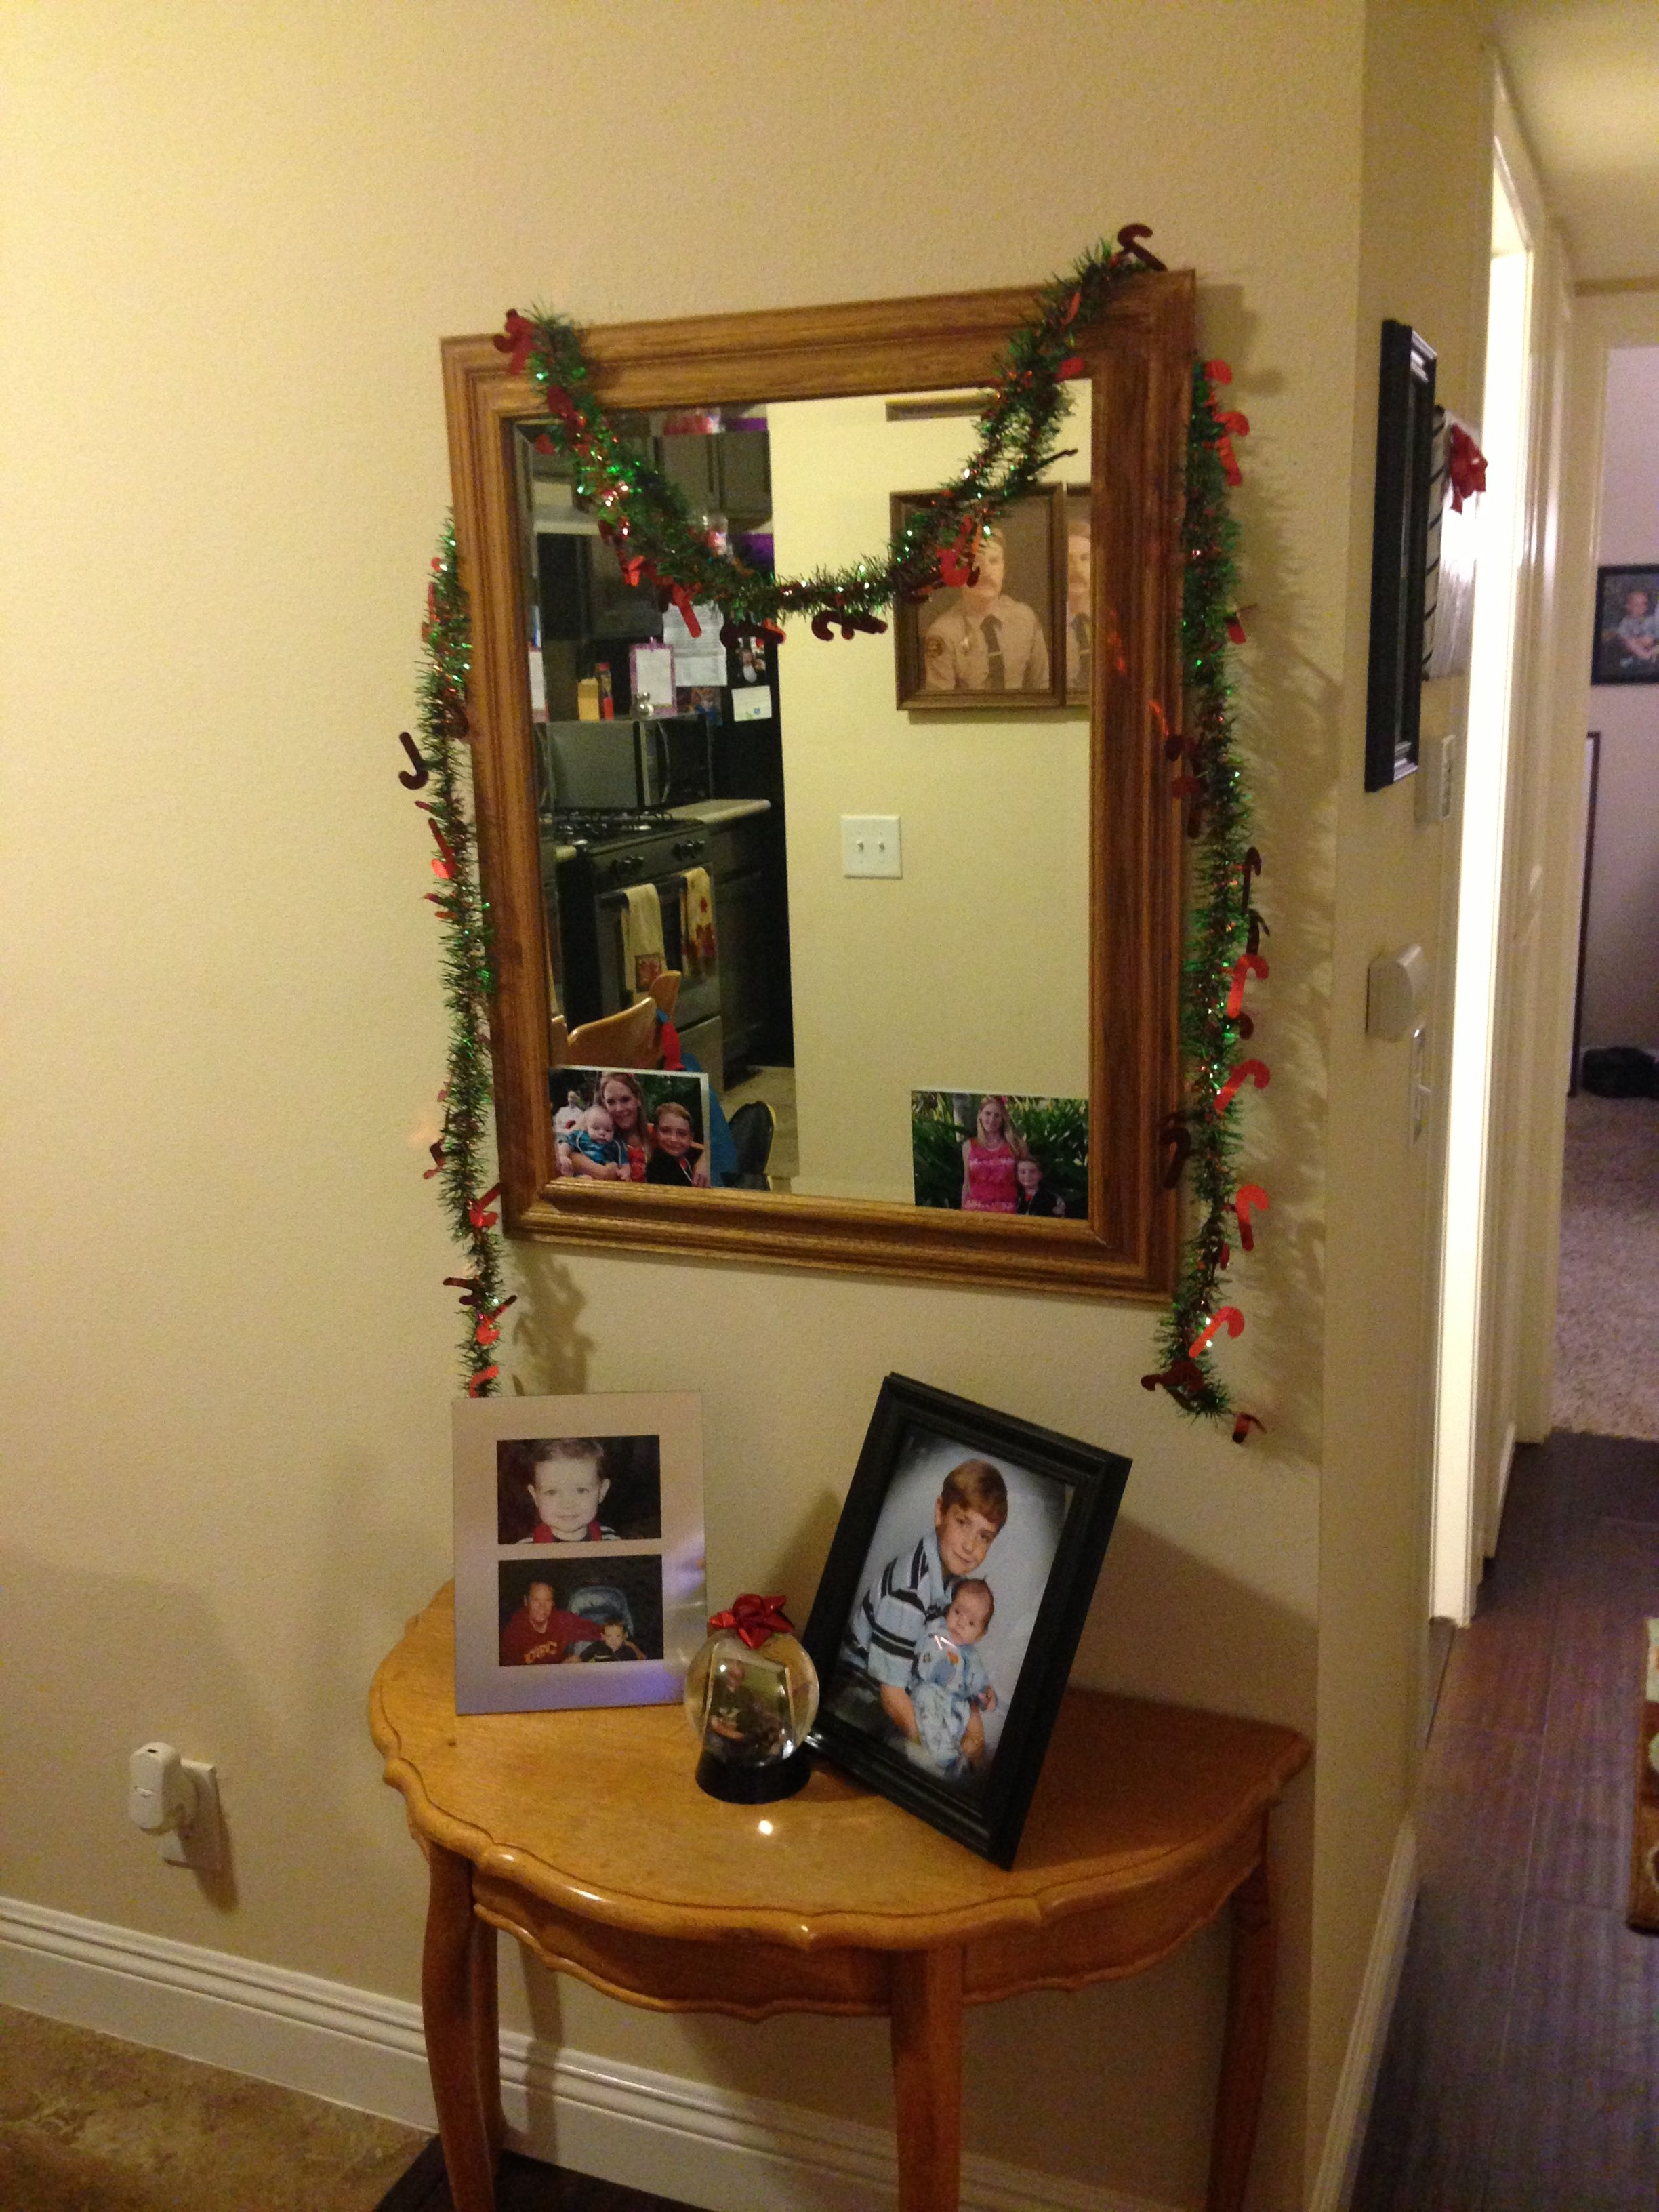 Christmas decorating has commenced